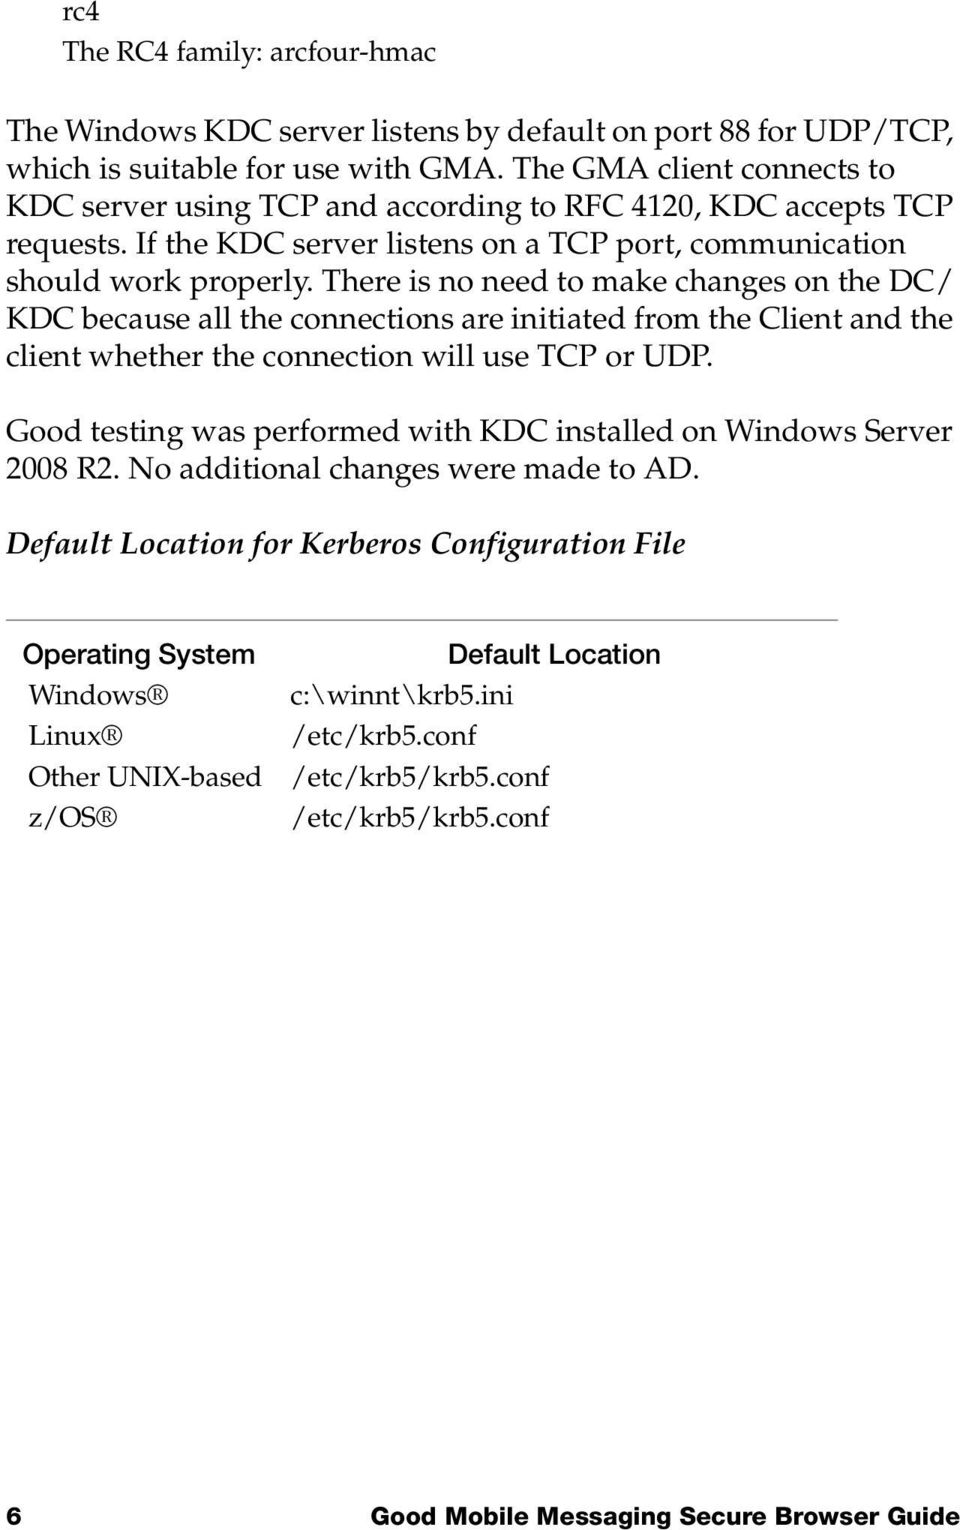 There is no need to make changes on the DC/ KDC because all the connections are initiated from the Client and the client whether the connection will use TCP or UDP.